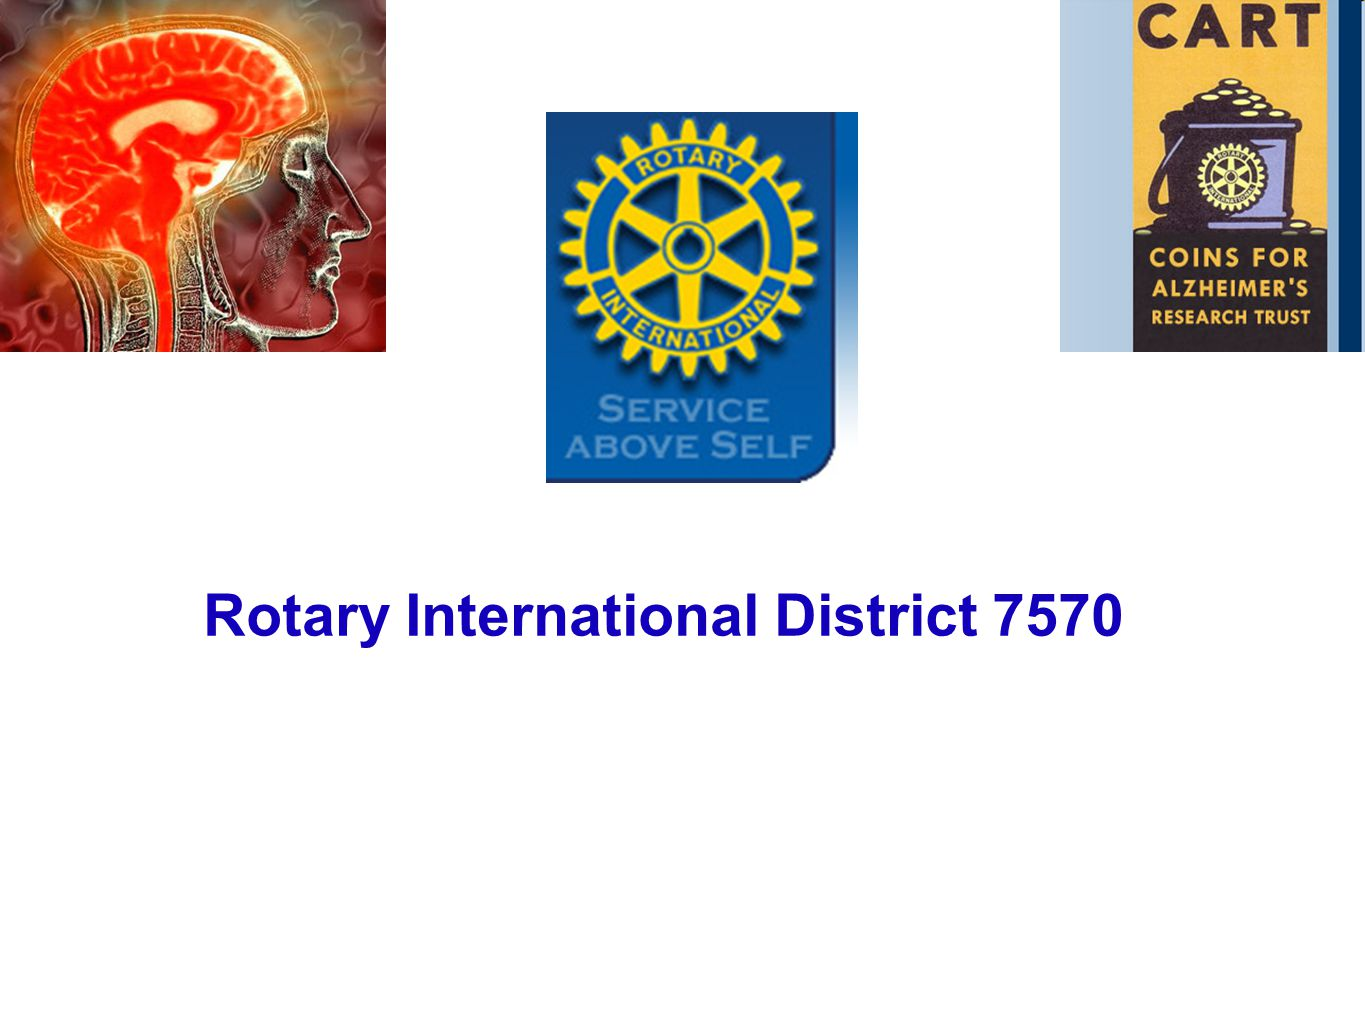 Rotary International District 7570